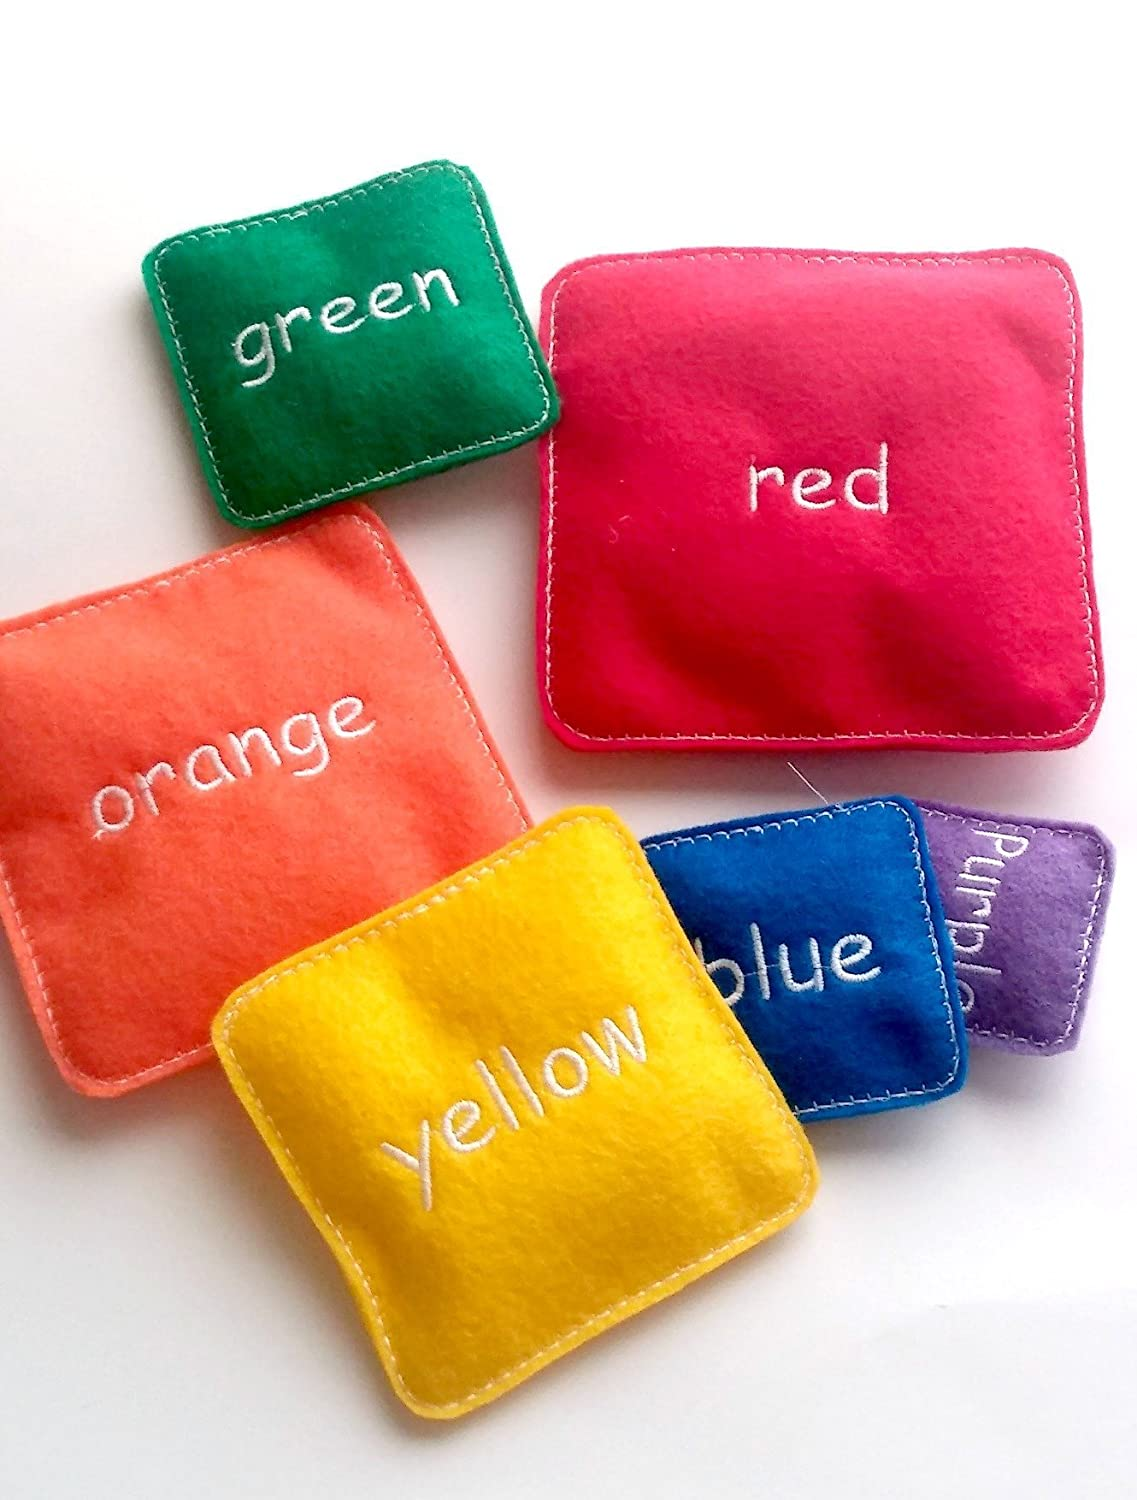 set includes 6 small pillows # 3920 Childrens stacking game